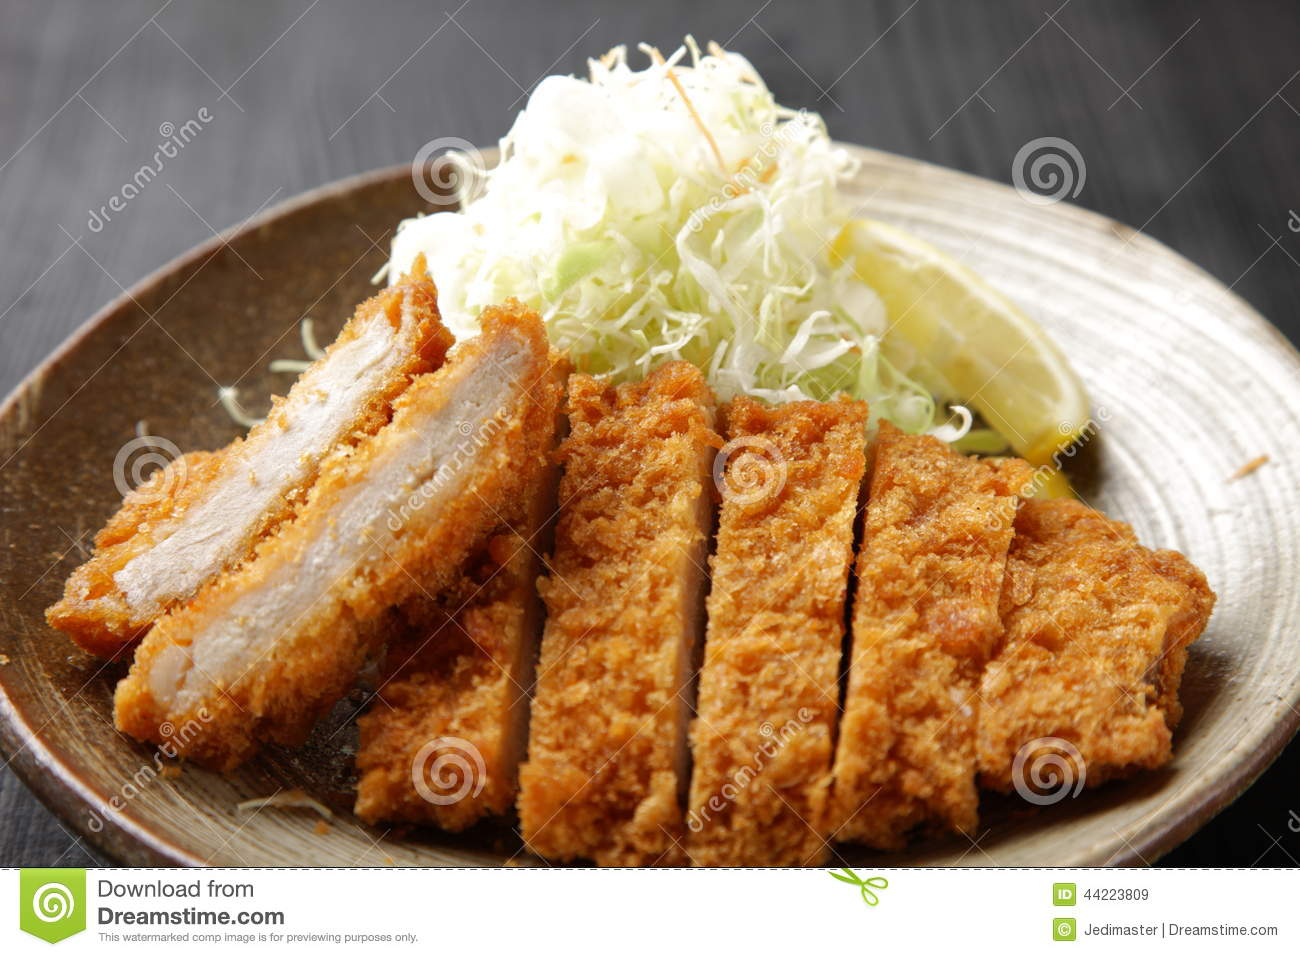 Japanese Pork Cutlet Tonkatsu Stock Photo - Image: 44223809